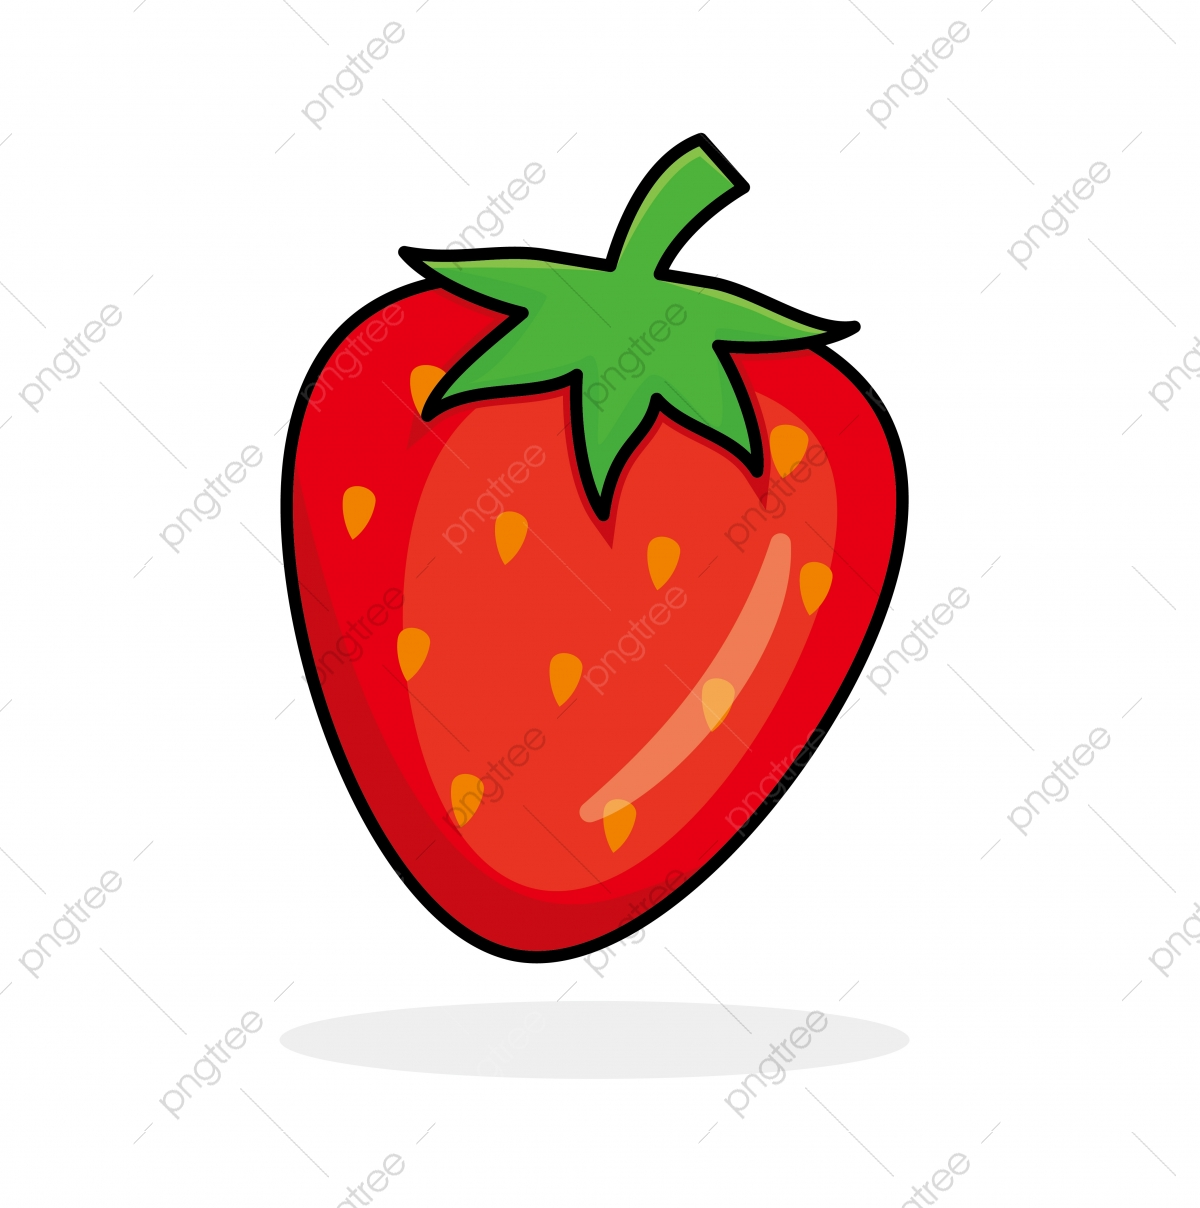 Clipart Download Free Transparent Png Format Clipart Images On Pngtree